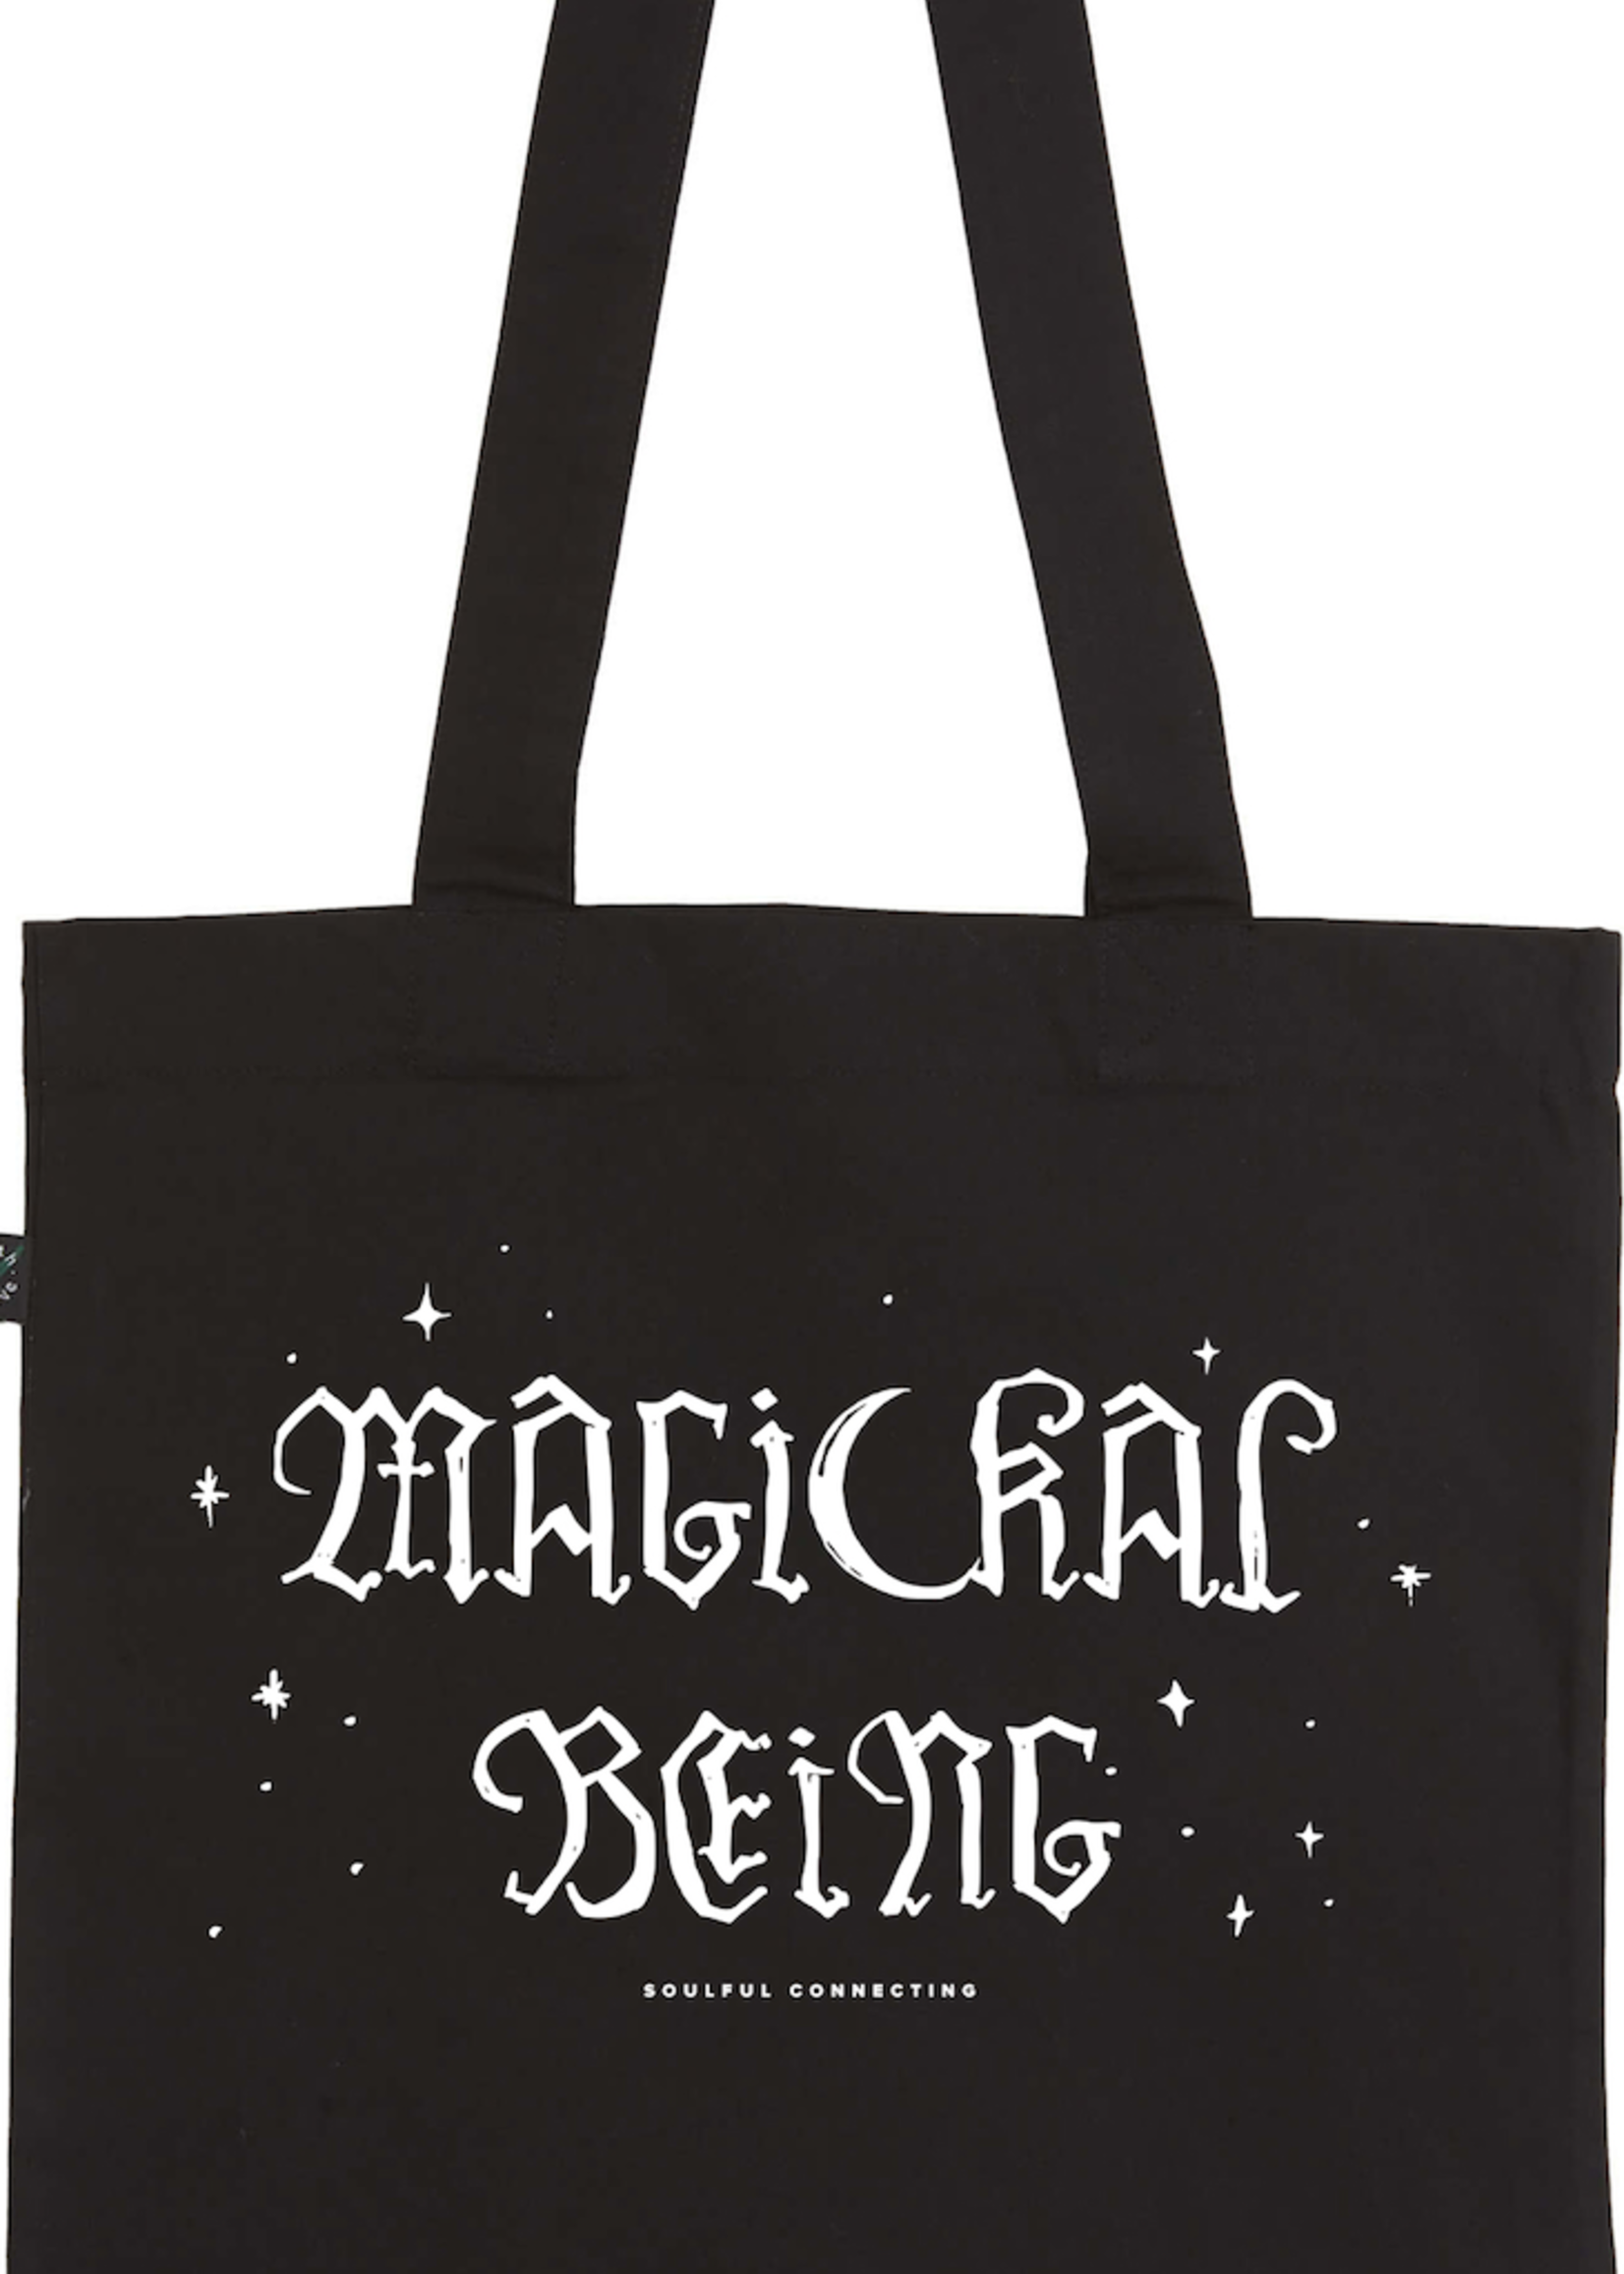 MAGICKAL BEING Bag in white on black